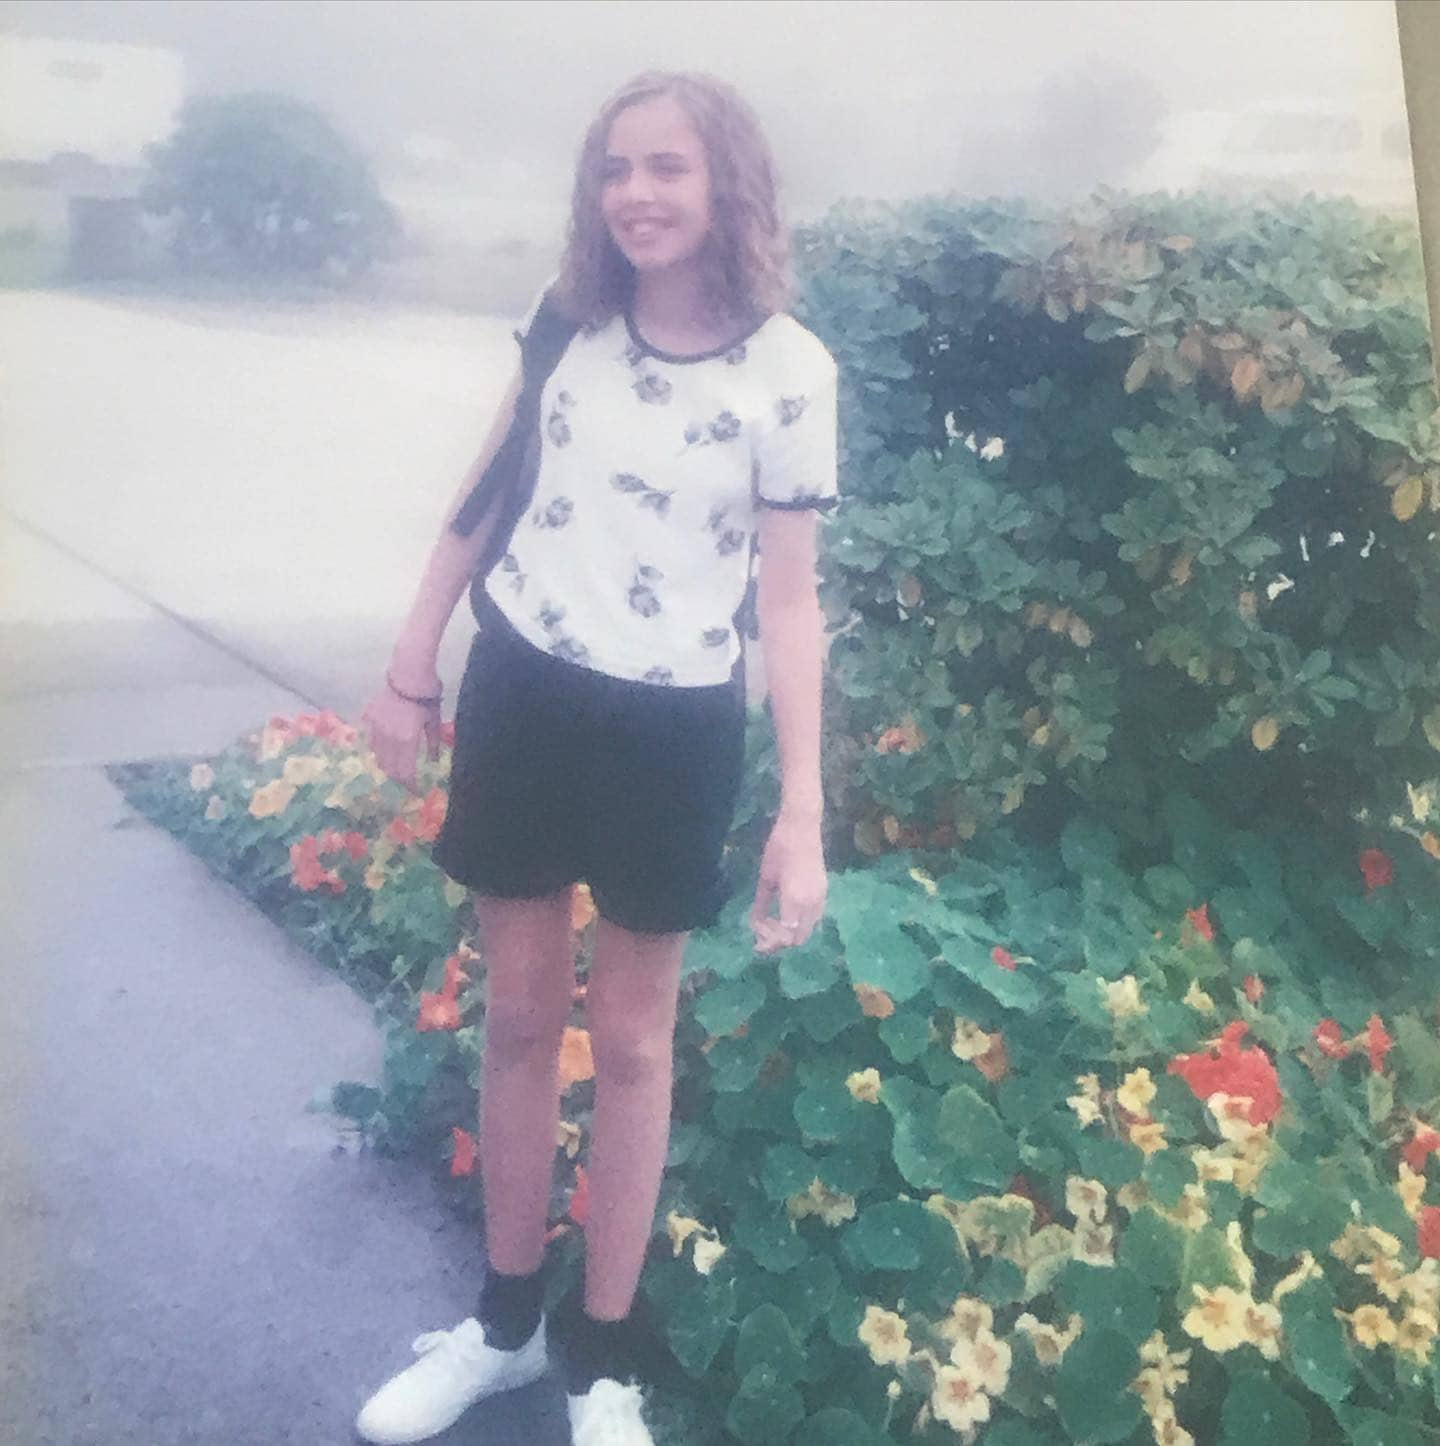 a photo of a junior high school girl with a backpack strap over one shoulder